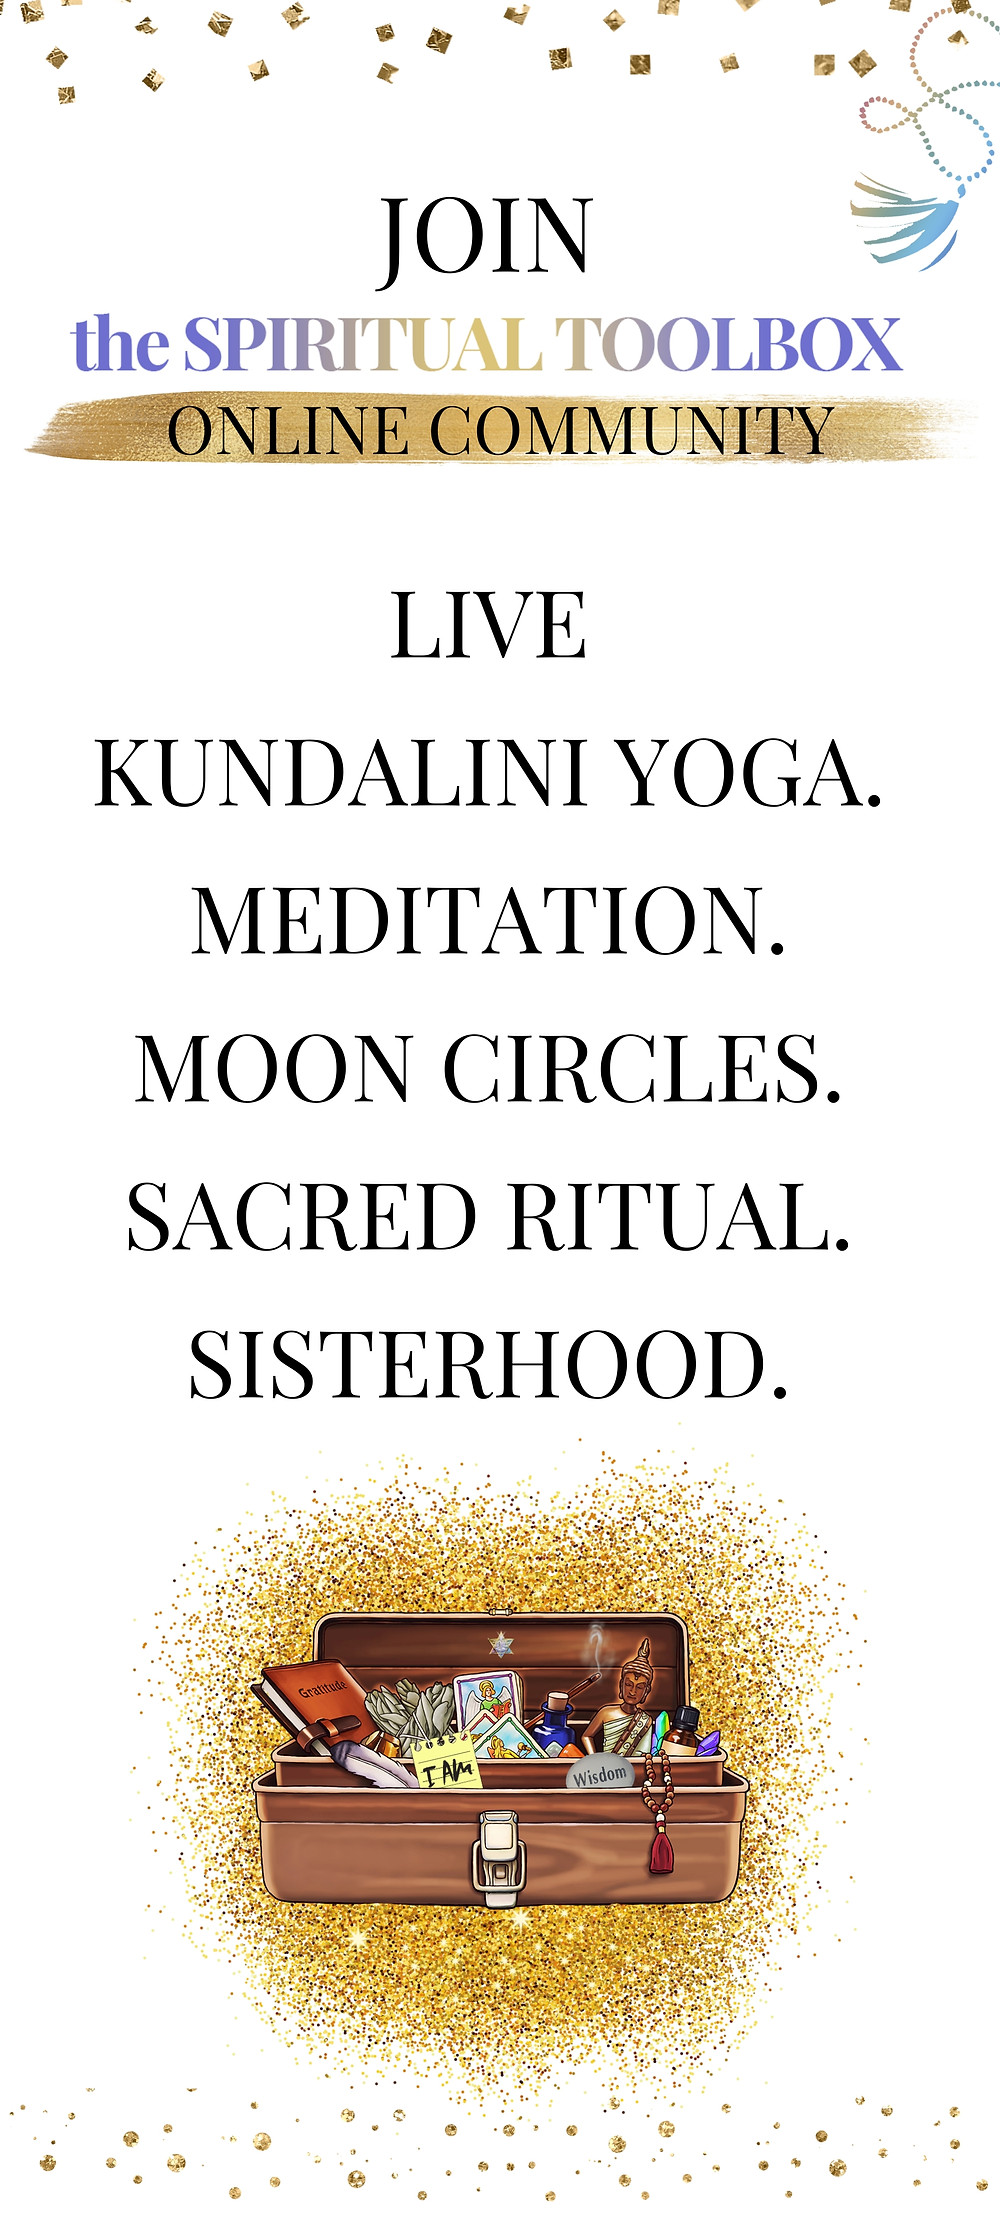 Join The Spiritual Toolbox Online Community | Live Kundalini Yoga. Meditation. Moon Circles. Sacred Ritual. Sisterhood.